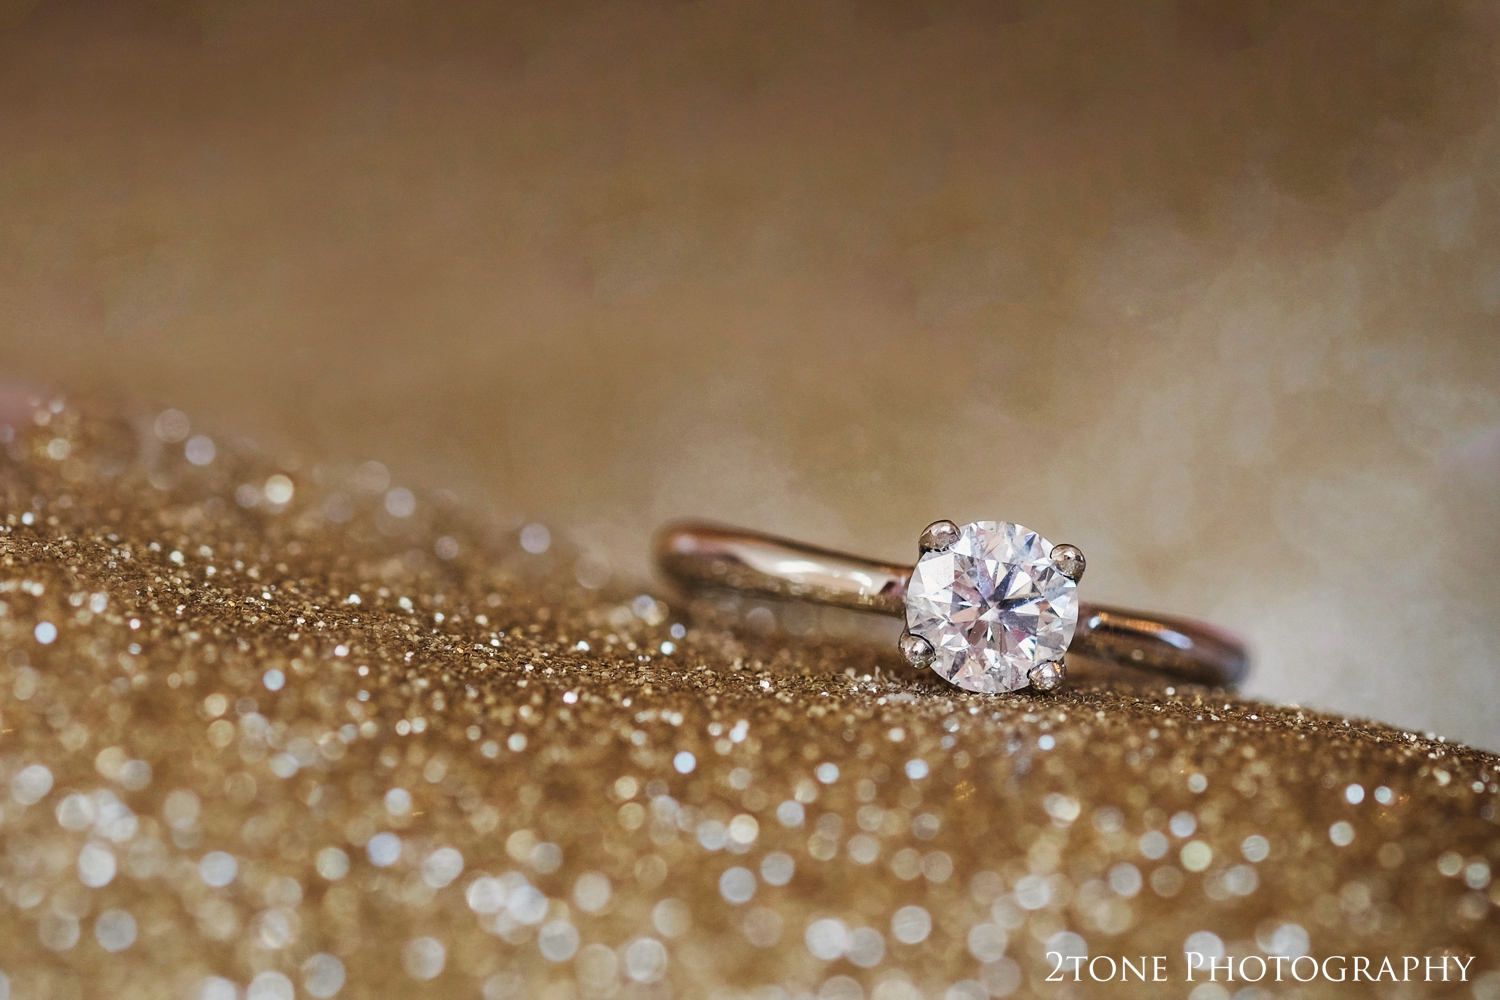 Emma's gorgeous gold wedding shoes made an ideal background for a shot of her stunning engagement ring.